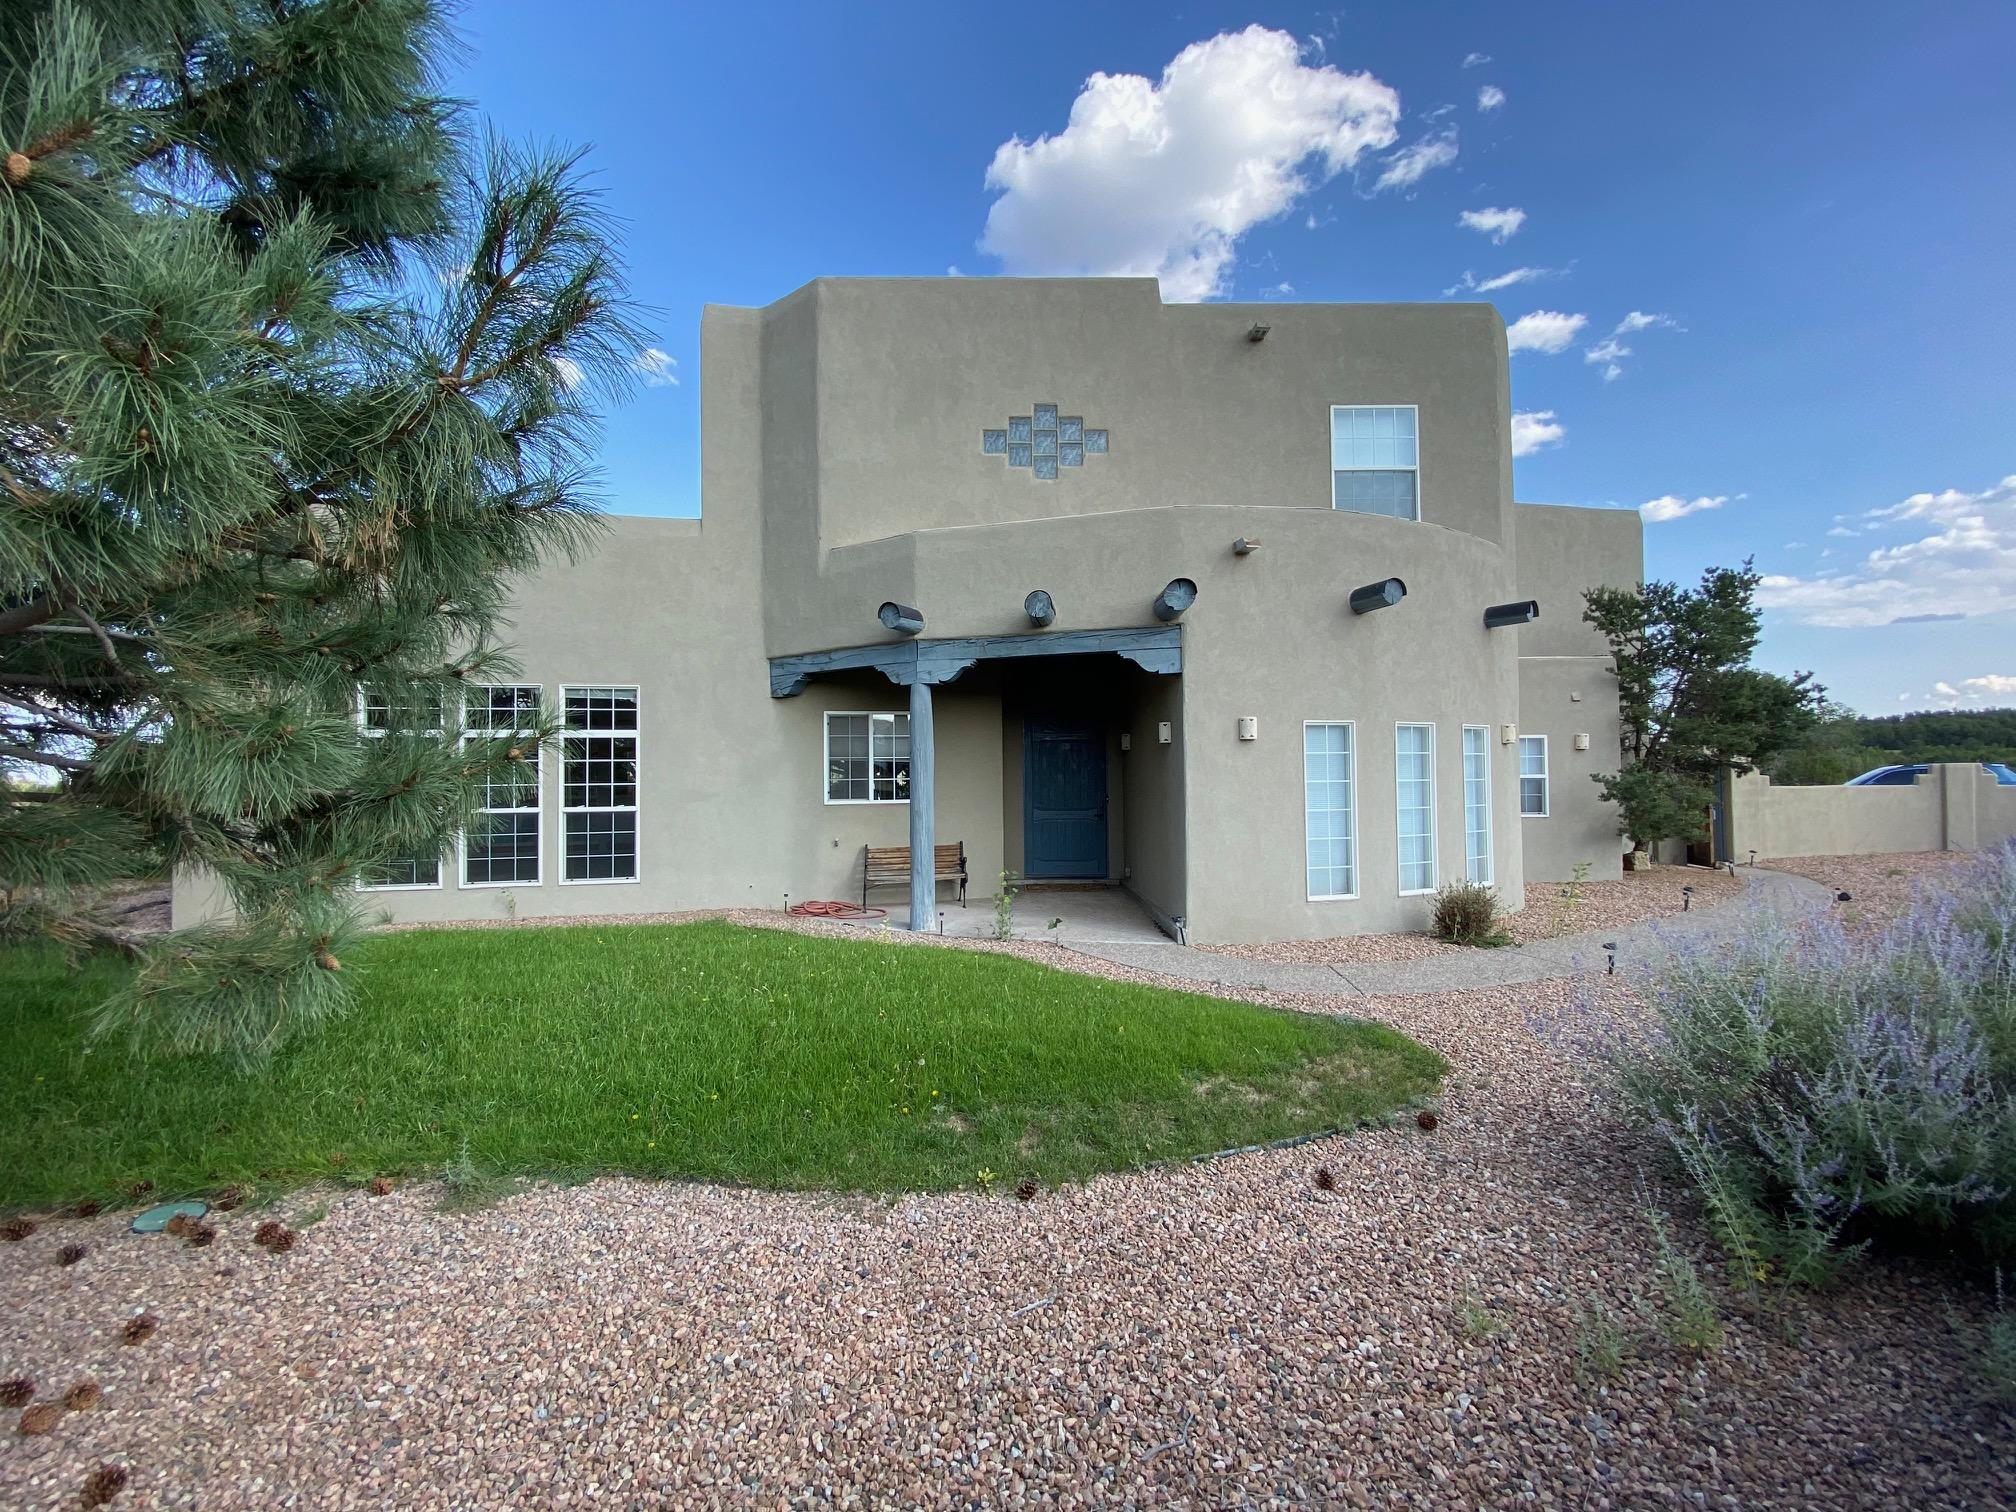 Move in right away!  Custom pueblo style home, on almost 3 acres, Fenced, landscaped backyard., large shade trees. Great location, right off of NM 217. Moriarty schools, Kiva fireplace for those winter evenings, plus a pellet stove, radiant floors. Small private subdivision, must see!